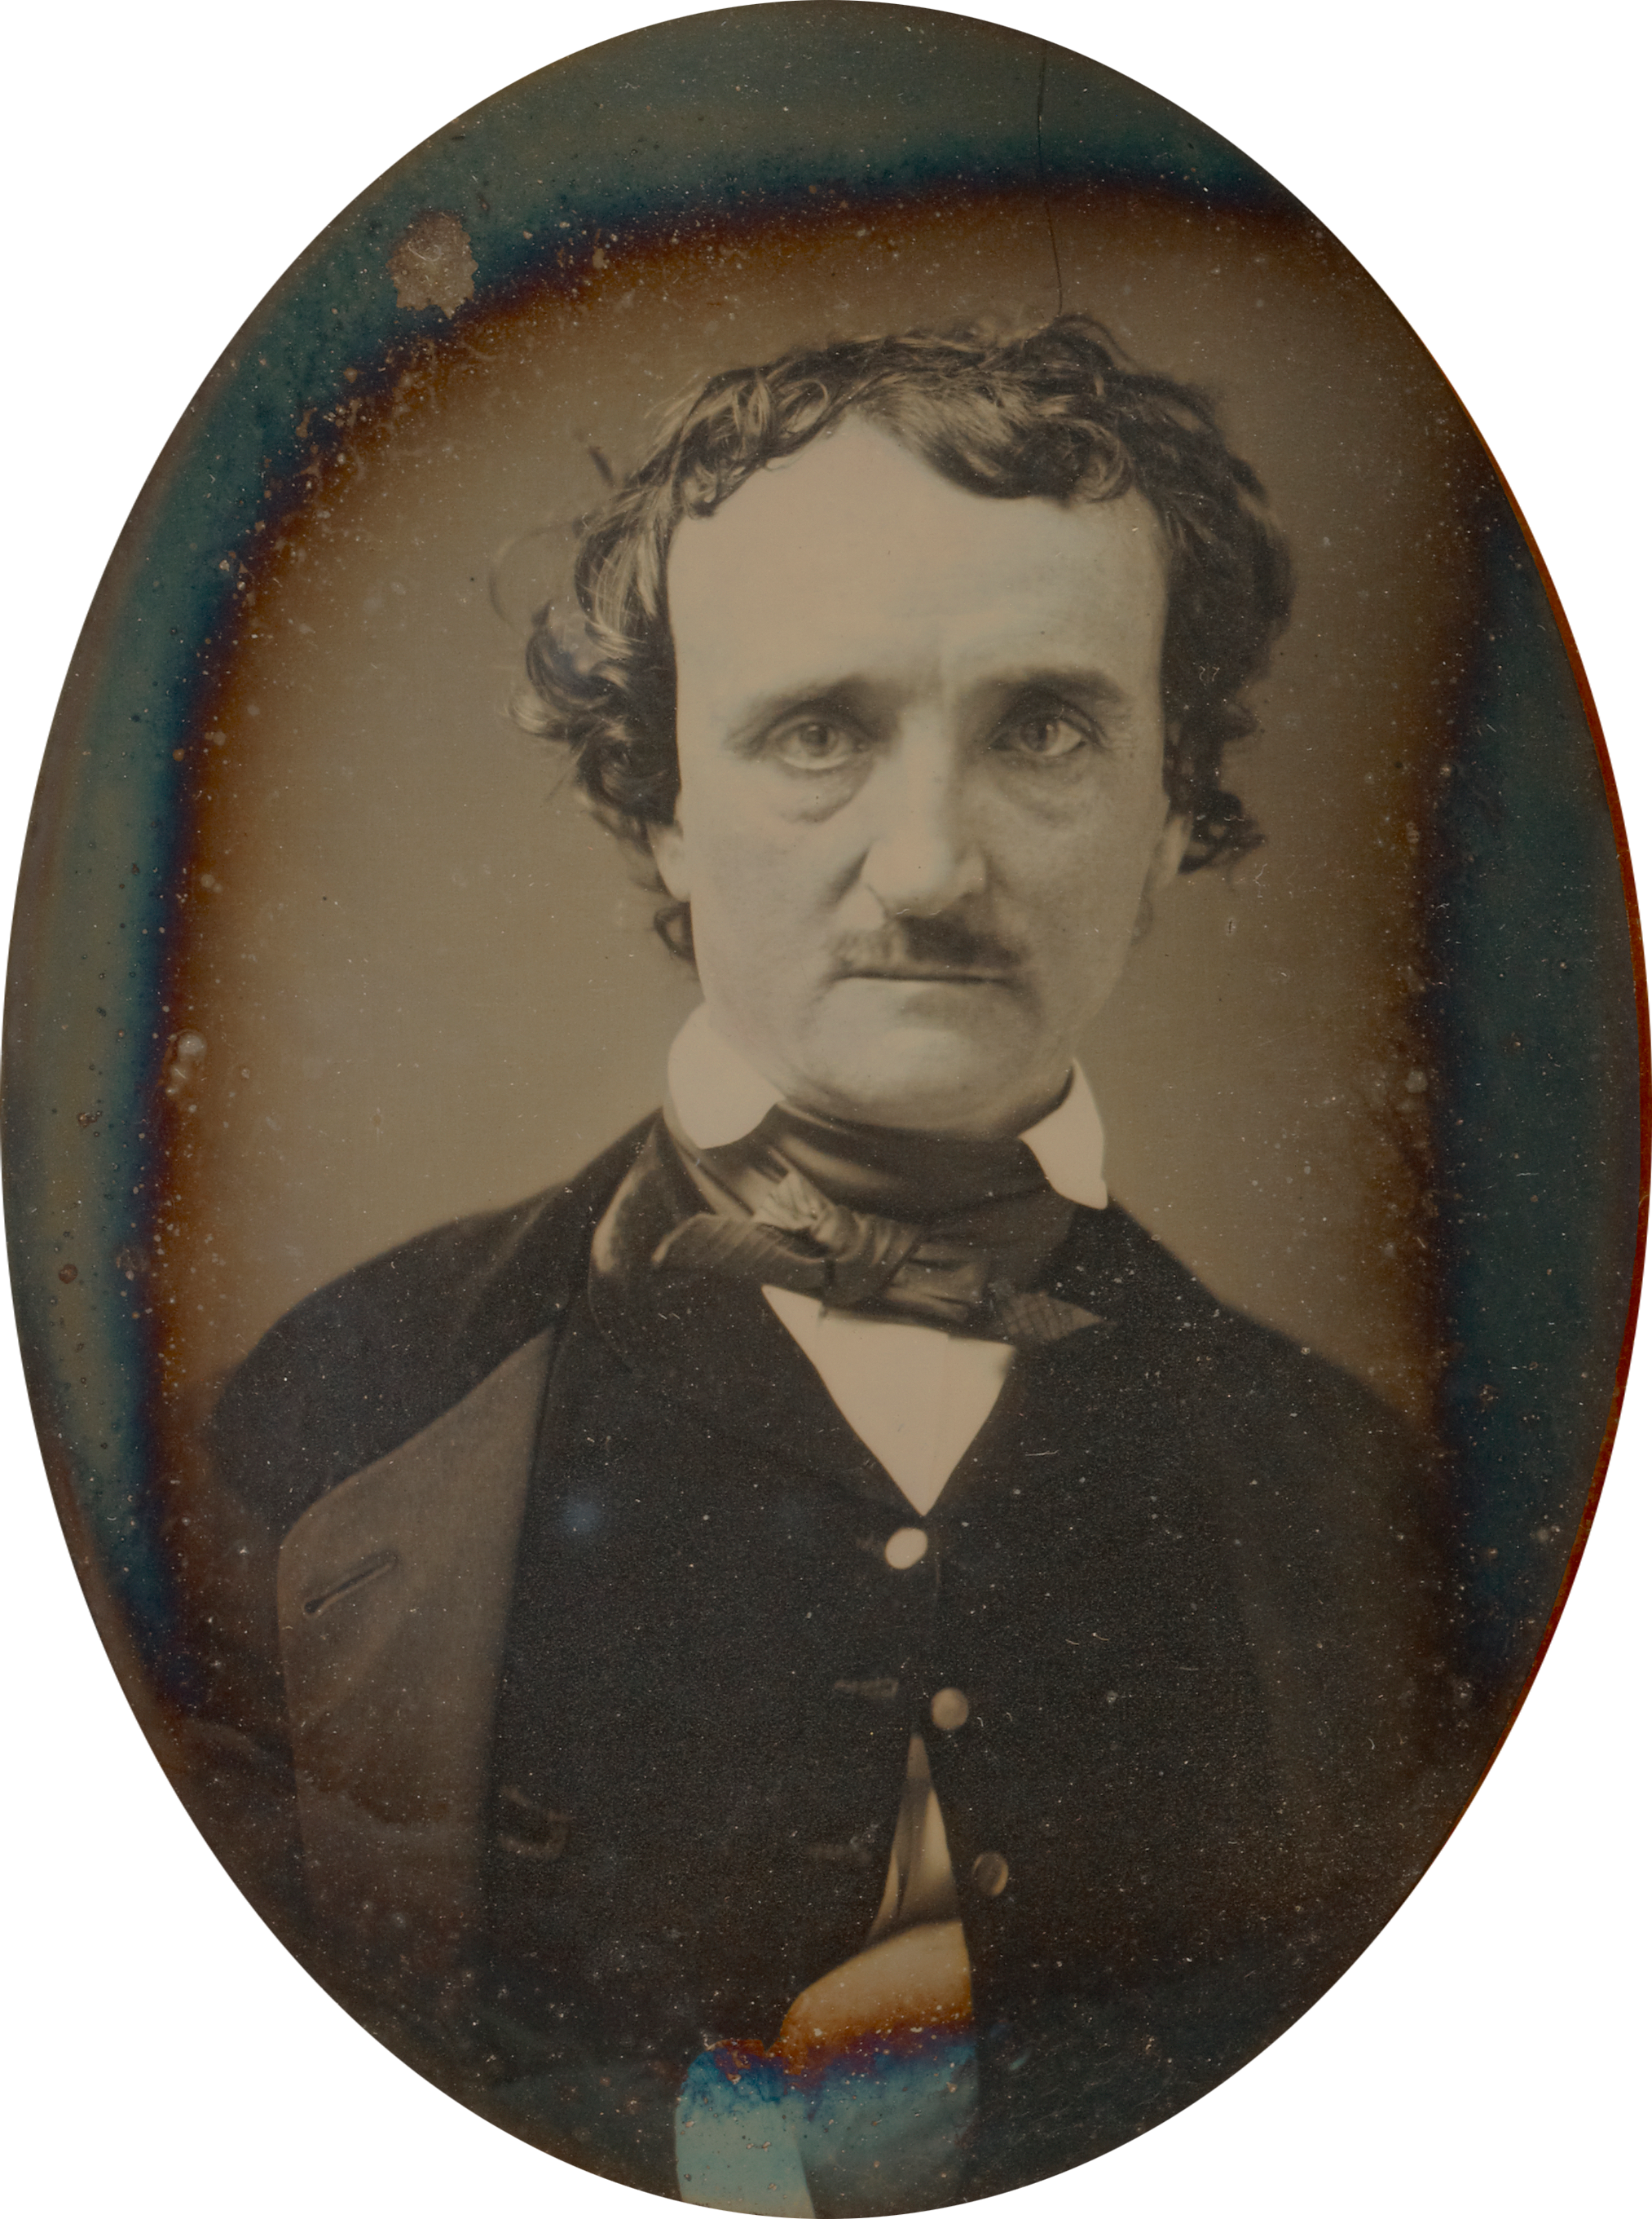 edgar poe Edgar allan poe (born edgar poe january 19, 1809 – october 7, 1849) was an american author, poet, editor, and literary critic, considered part of the american.